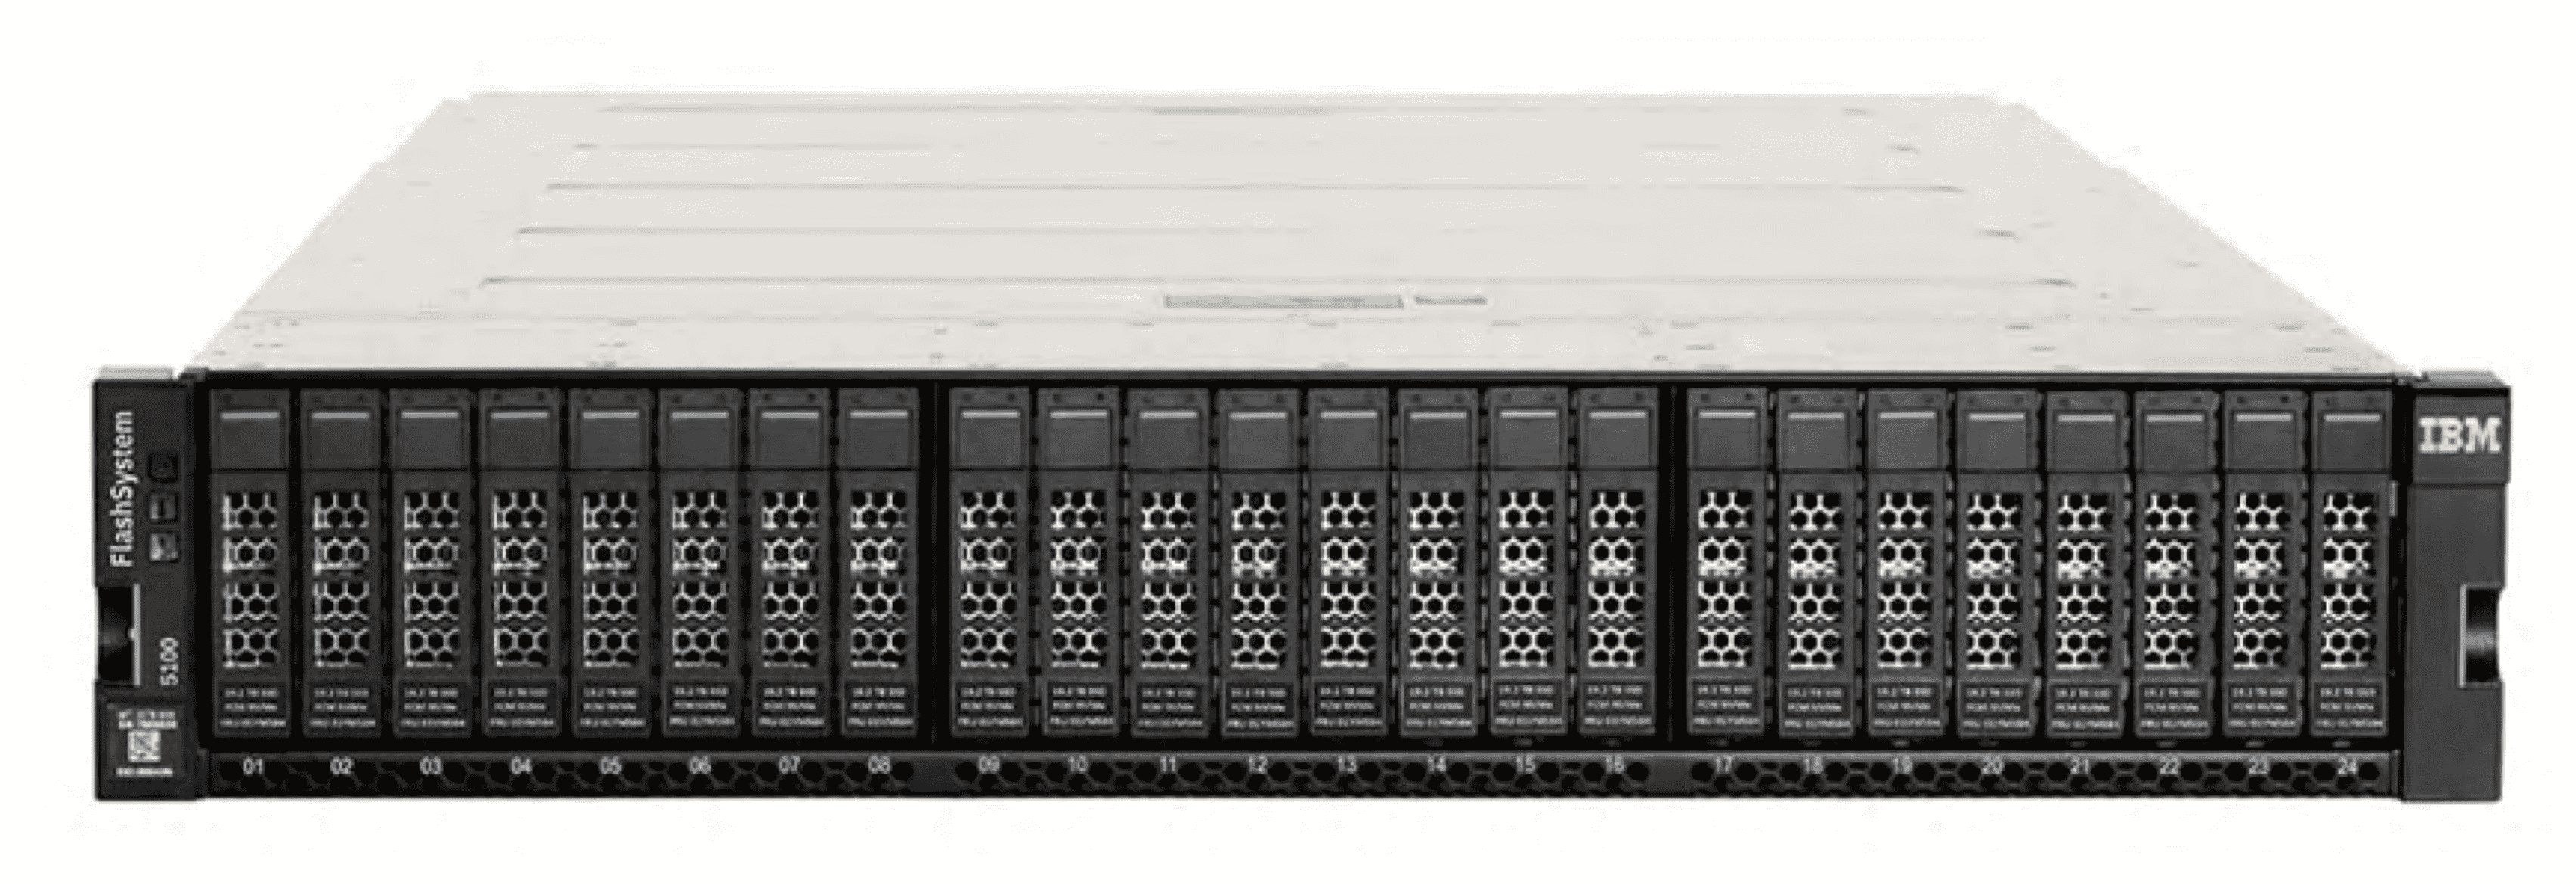 IBM FlashSystem Review – Part 3 – Ease of Use